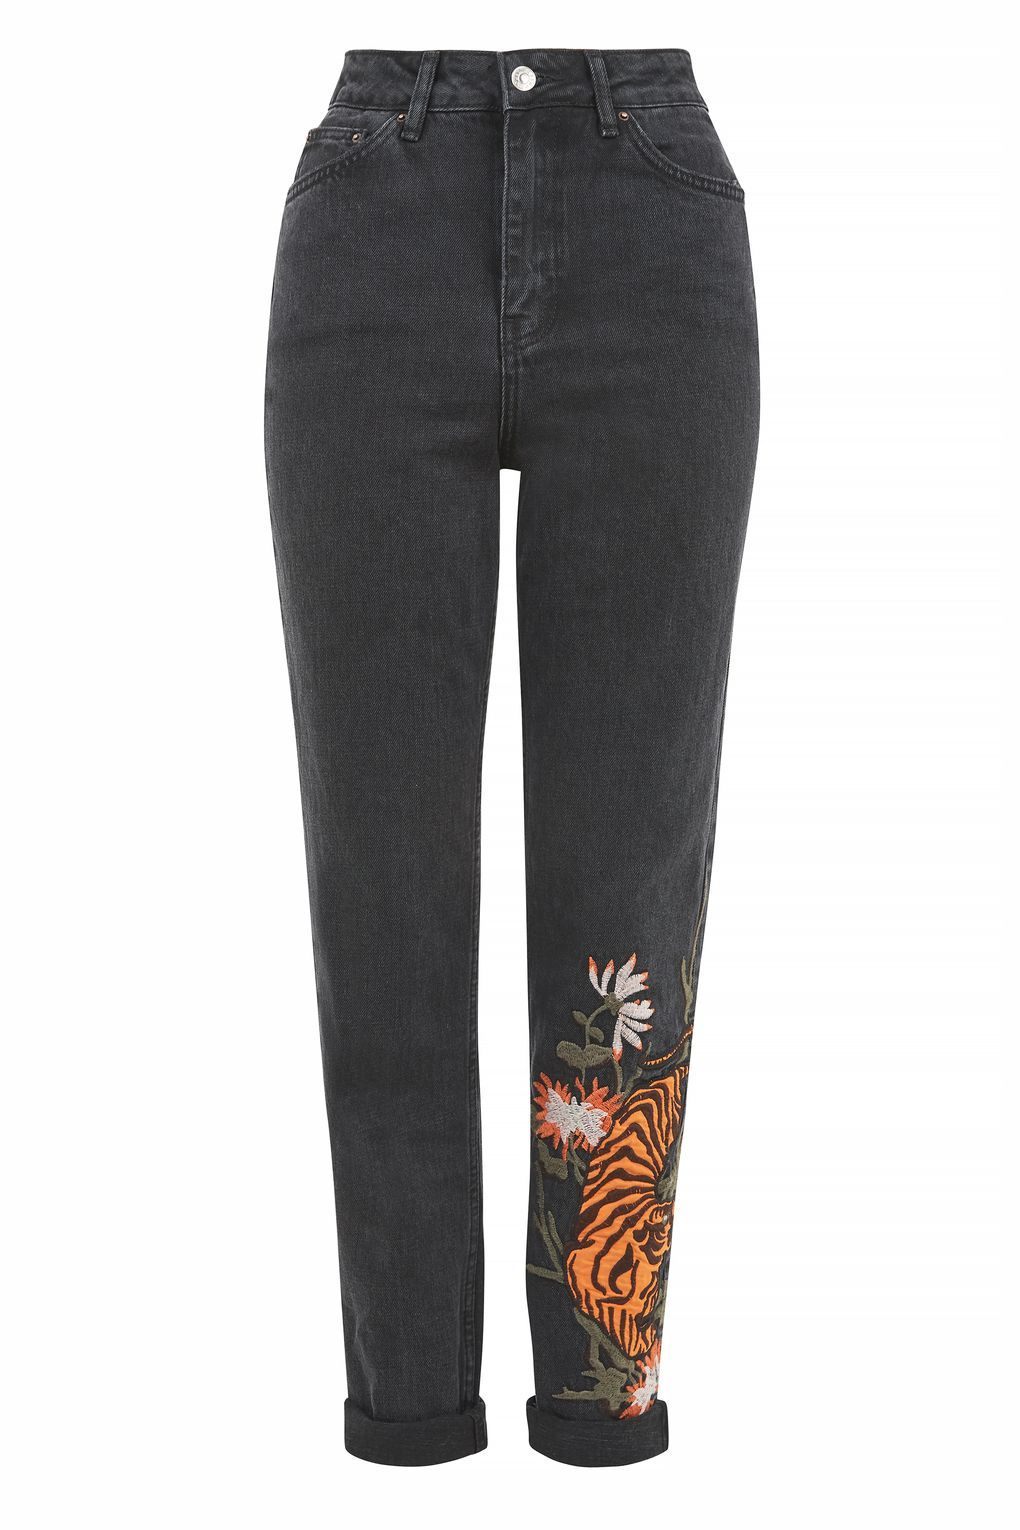 MOTO Tiger Embroidered Mom Jeans - New In- Topshop Europe